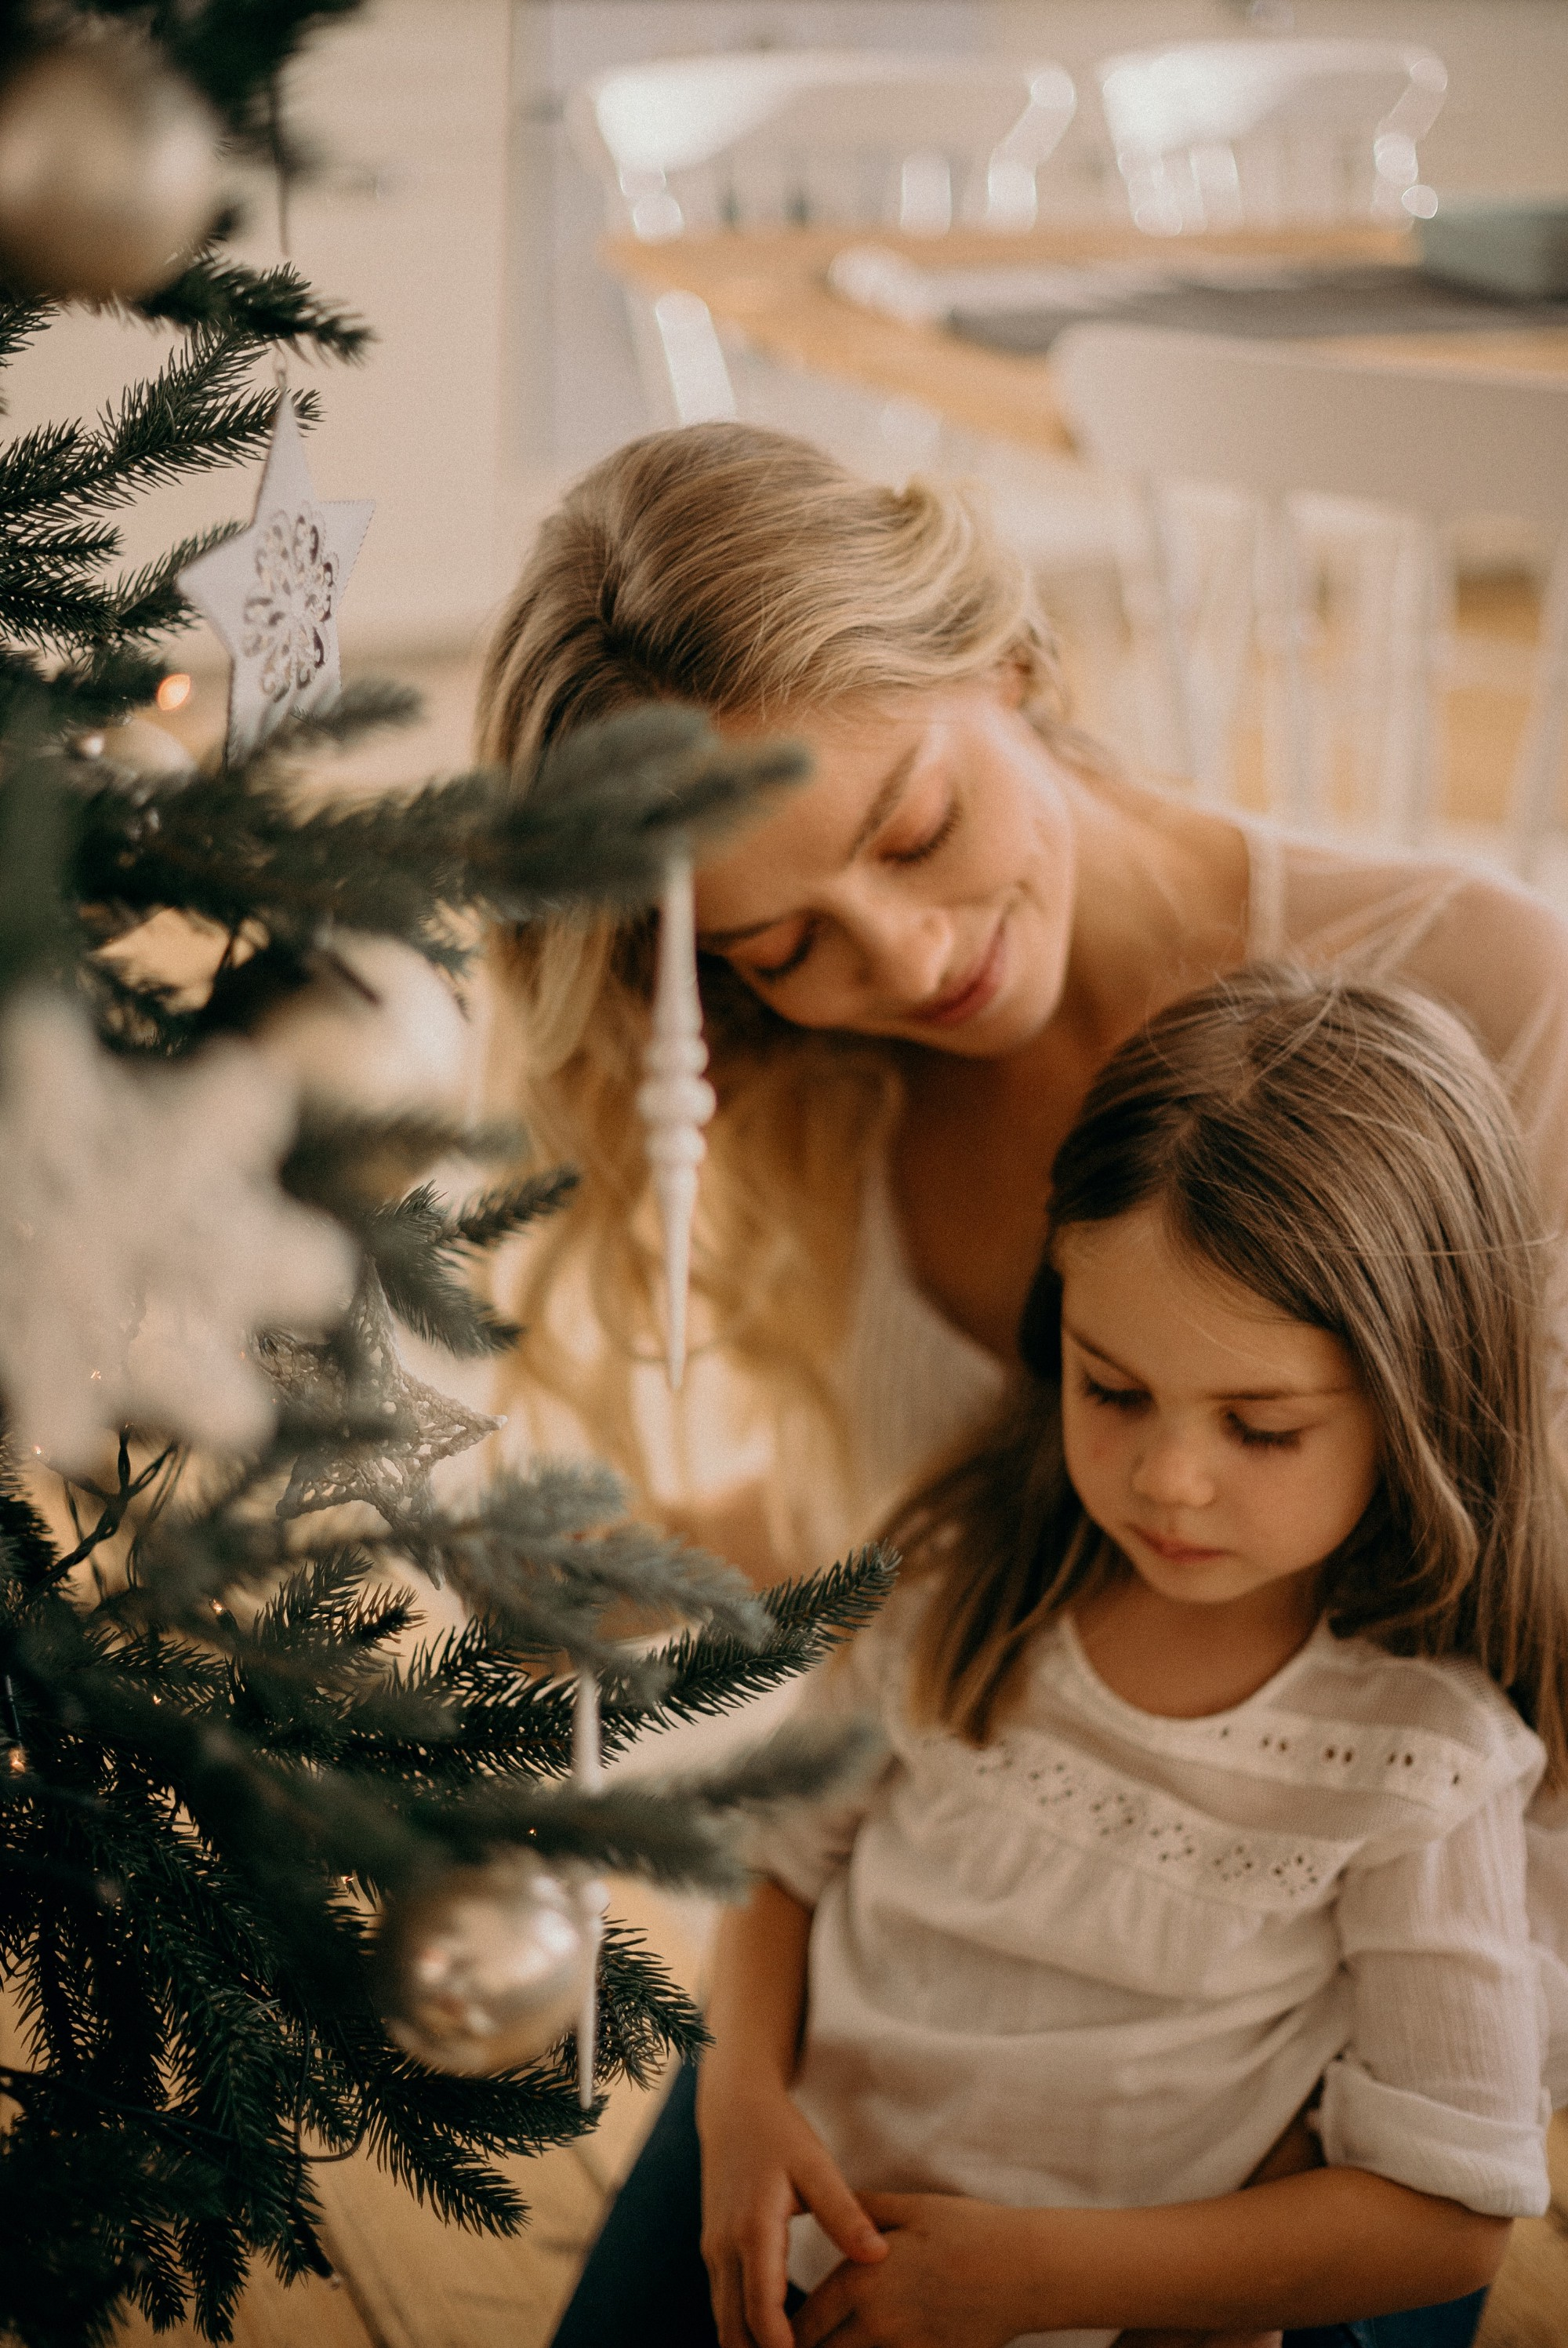 Mother and daughter decorating Christmas tree.